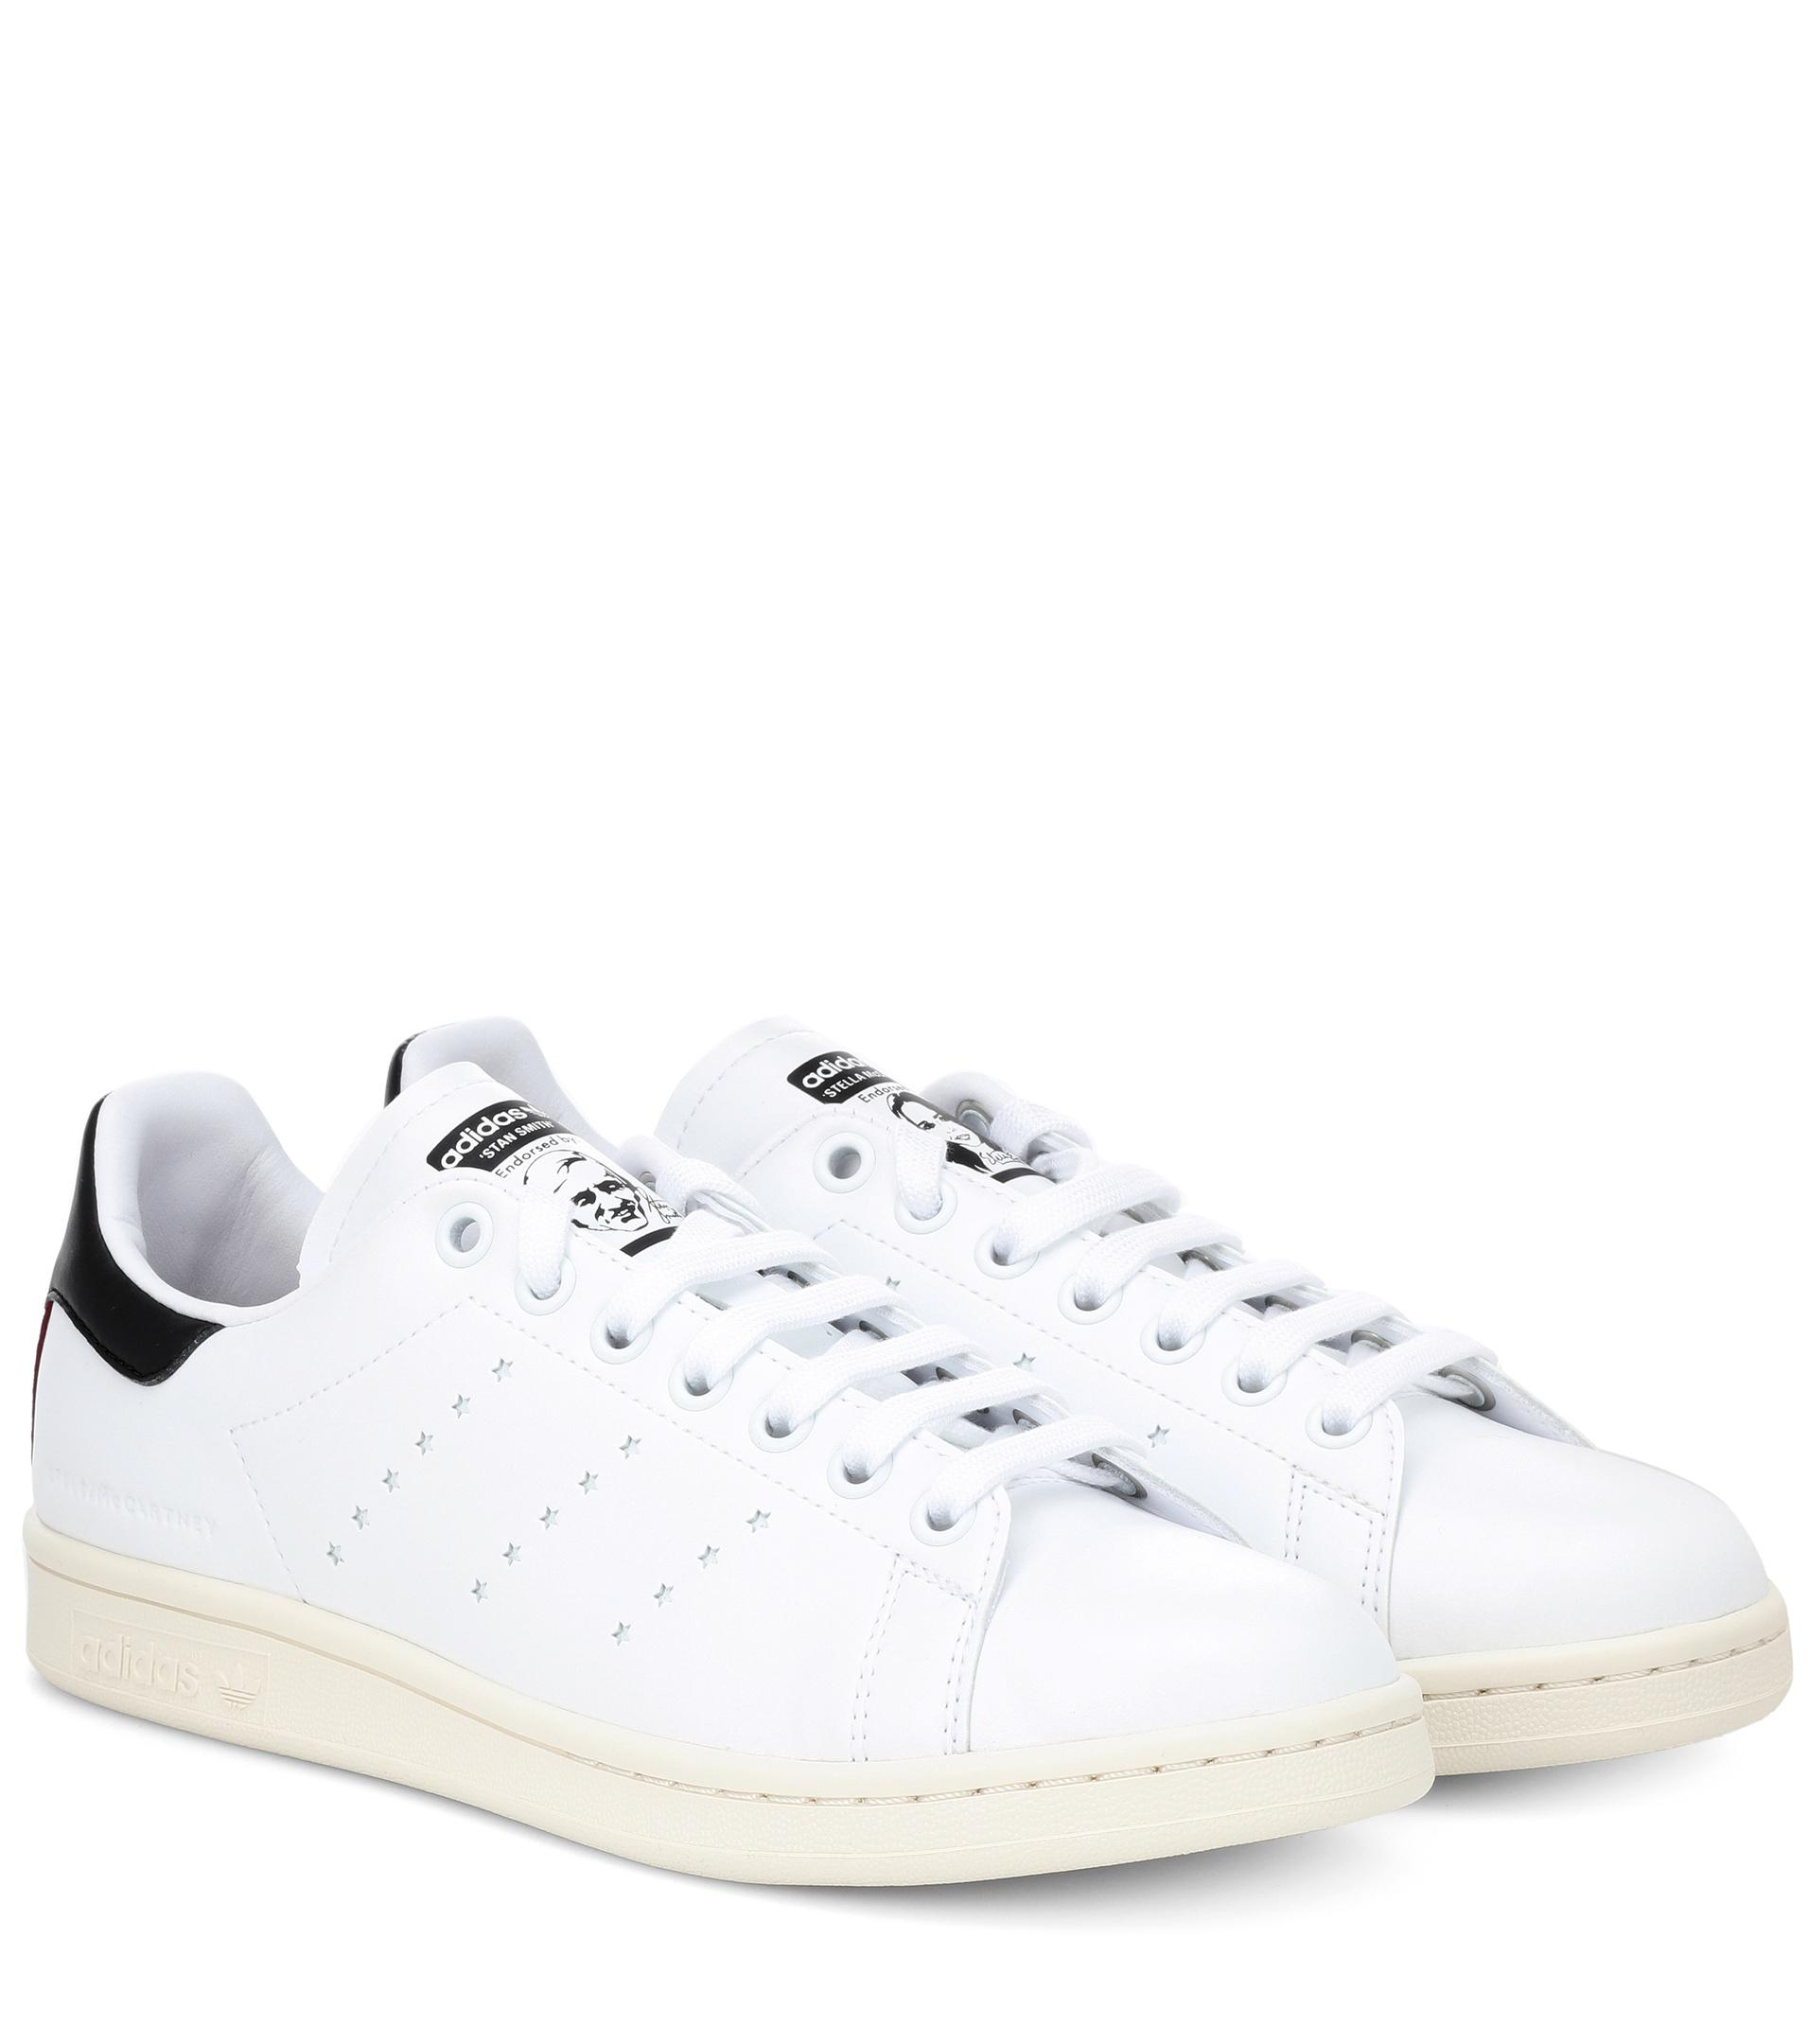 Lyst - Stella McCartney White Stan Smith Sneakers in White - Save 20% b372a4ee2